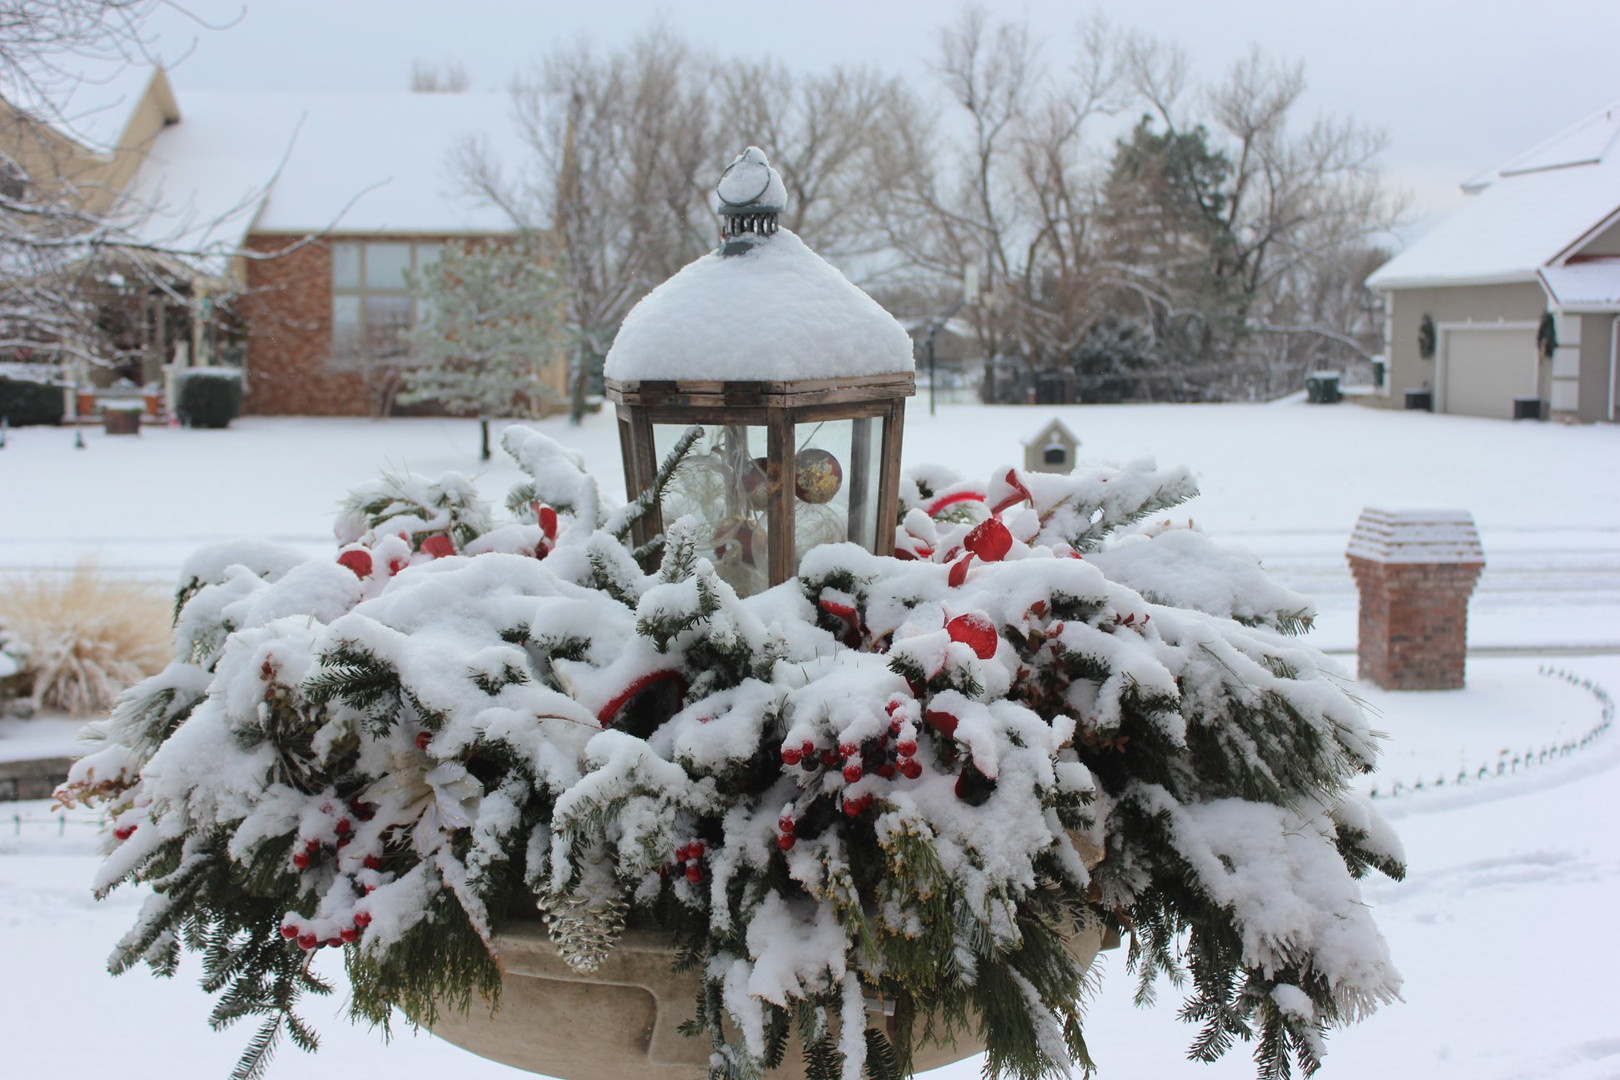 Year-round Holiday Pottery_Landscaping with snow